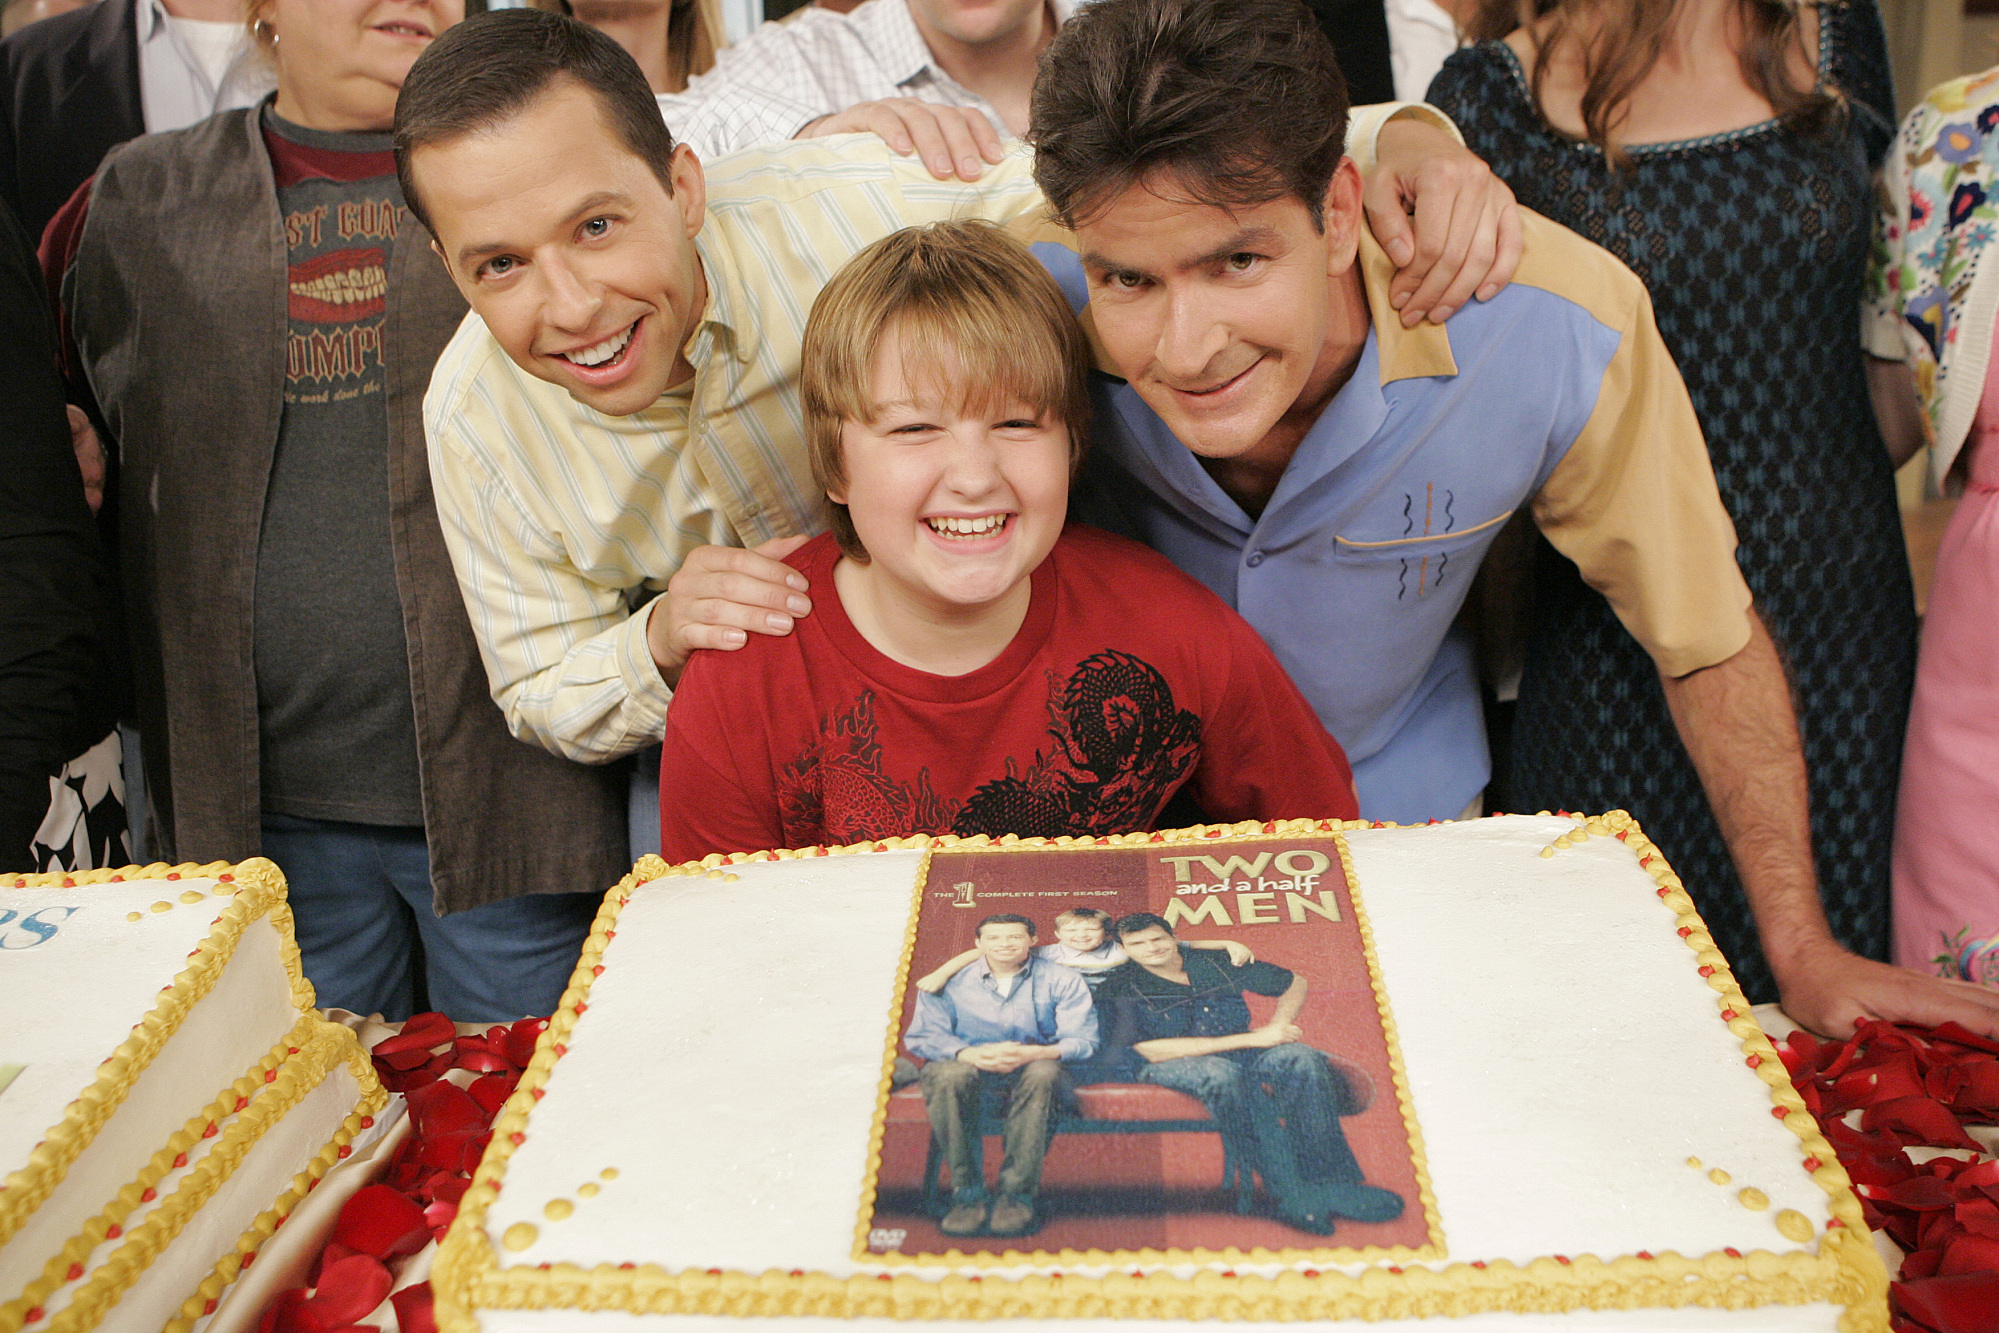 Image #: 3781950    'City of Great Racks'  -- Jon Cryer (left), Angus T. Jones (center) and Charlie Sheen (right) celebrate t